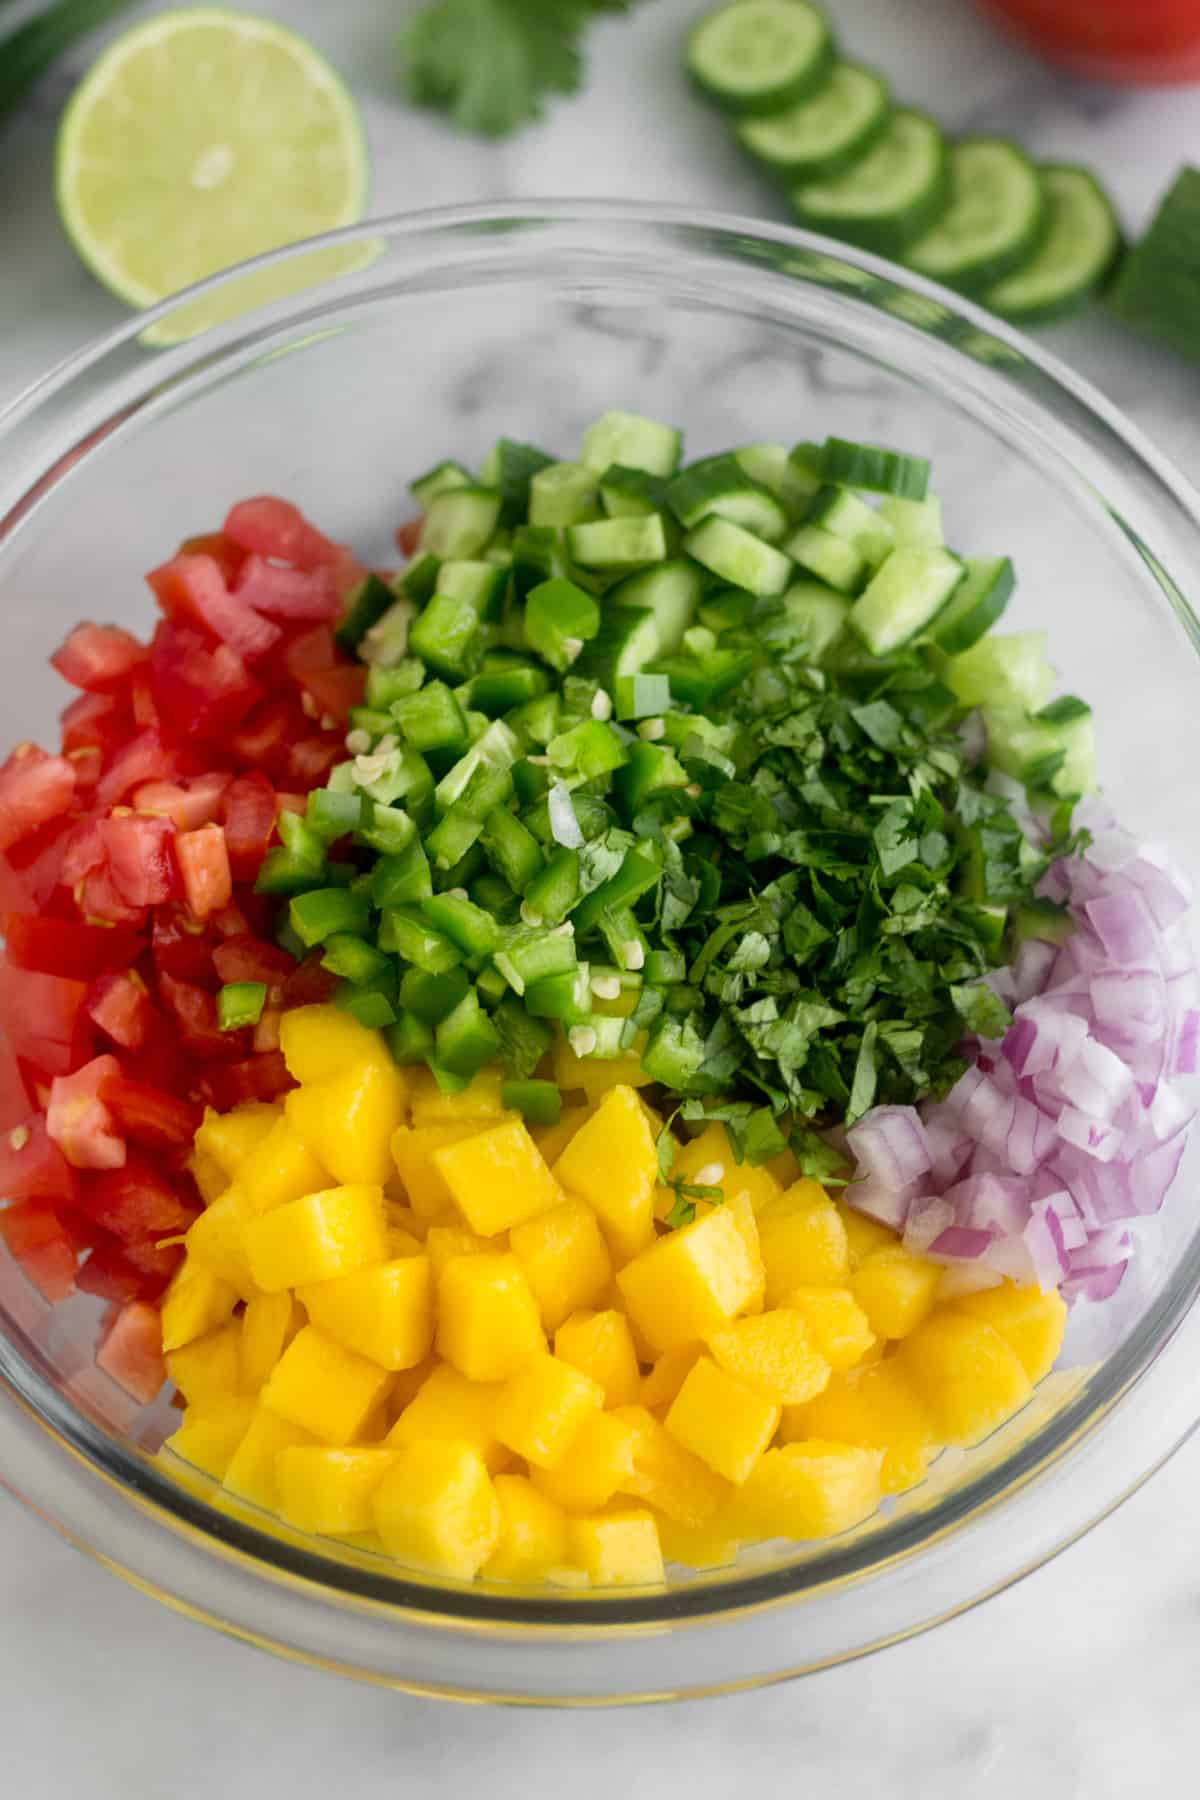 Large glass bowl filled with the components of Mango Cucumber Salsa - diced tomato, diced cucumber, diced red onion, diced mango, jalapeño, and cilantro